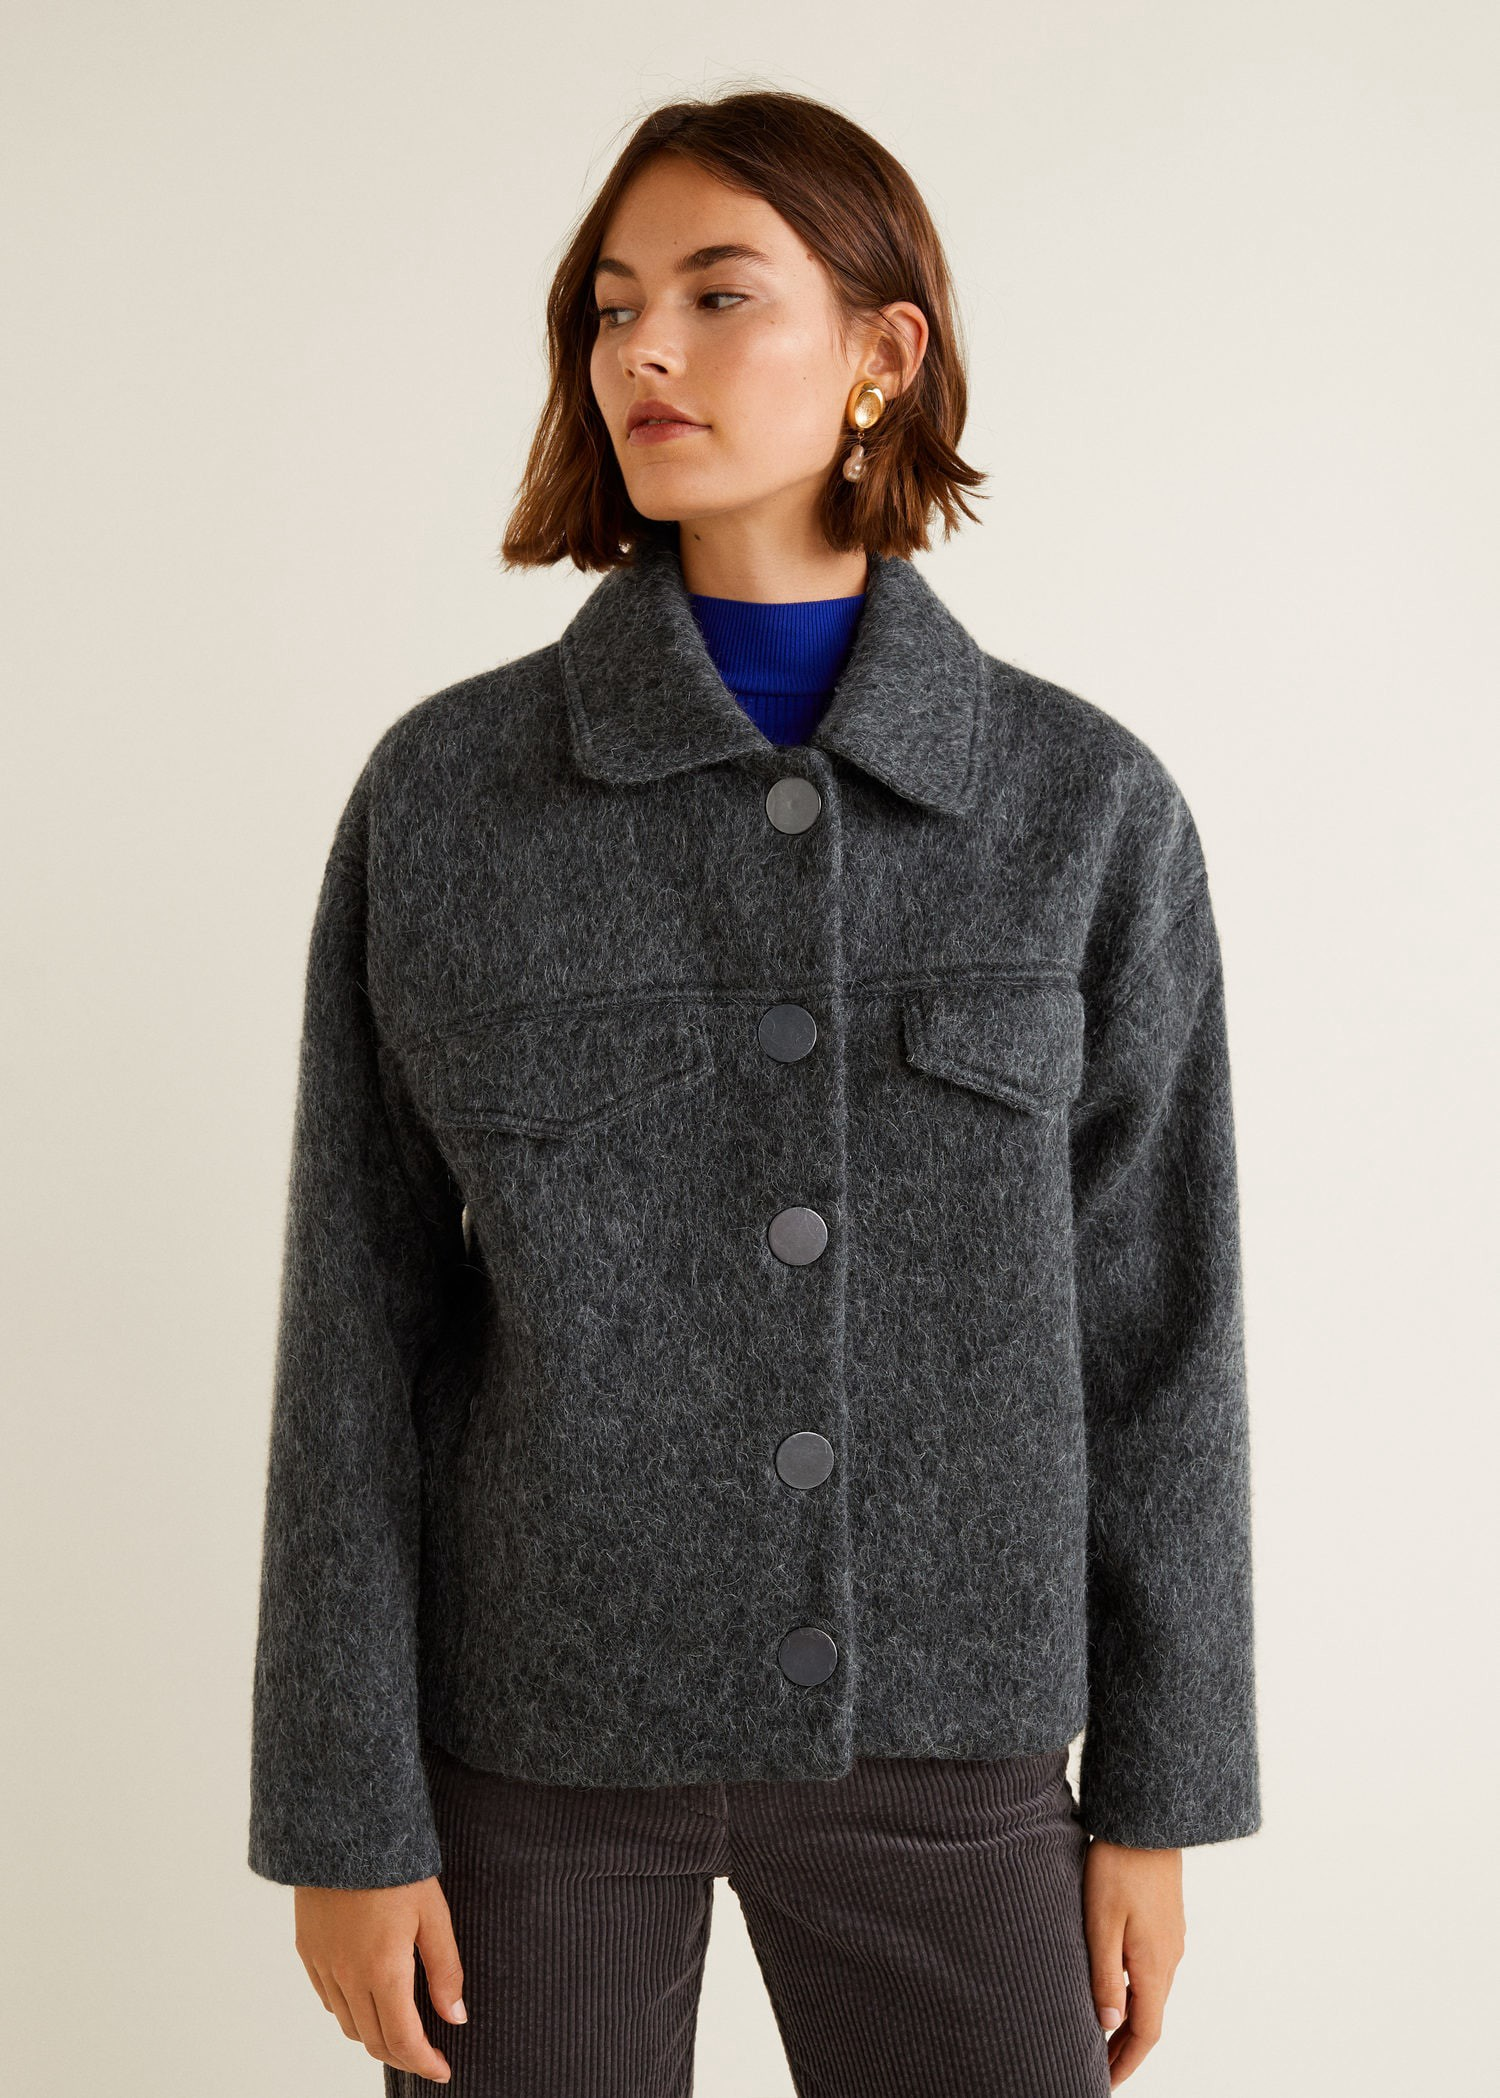 Buttoned wool jacket by Mango   Products   Pinterest   Jackets, Gray ... a42fdd07ccf8